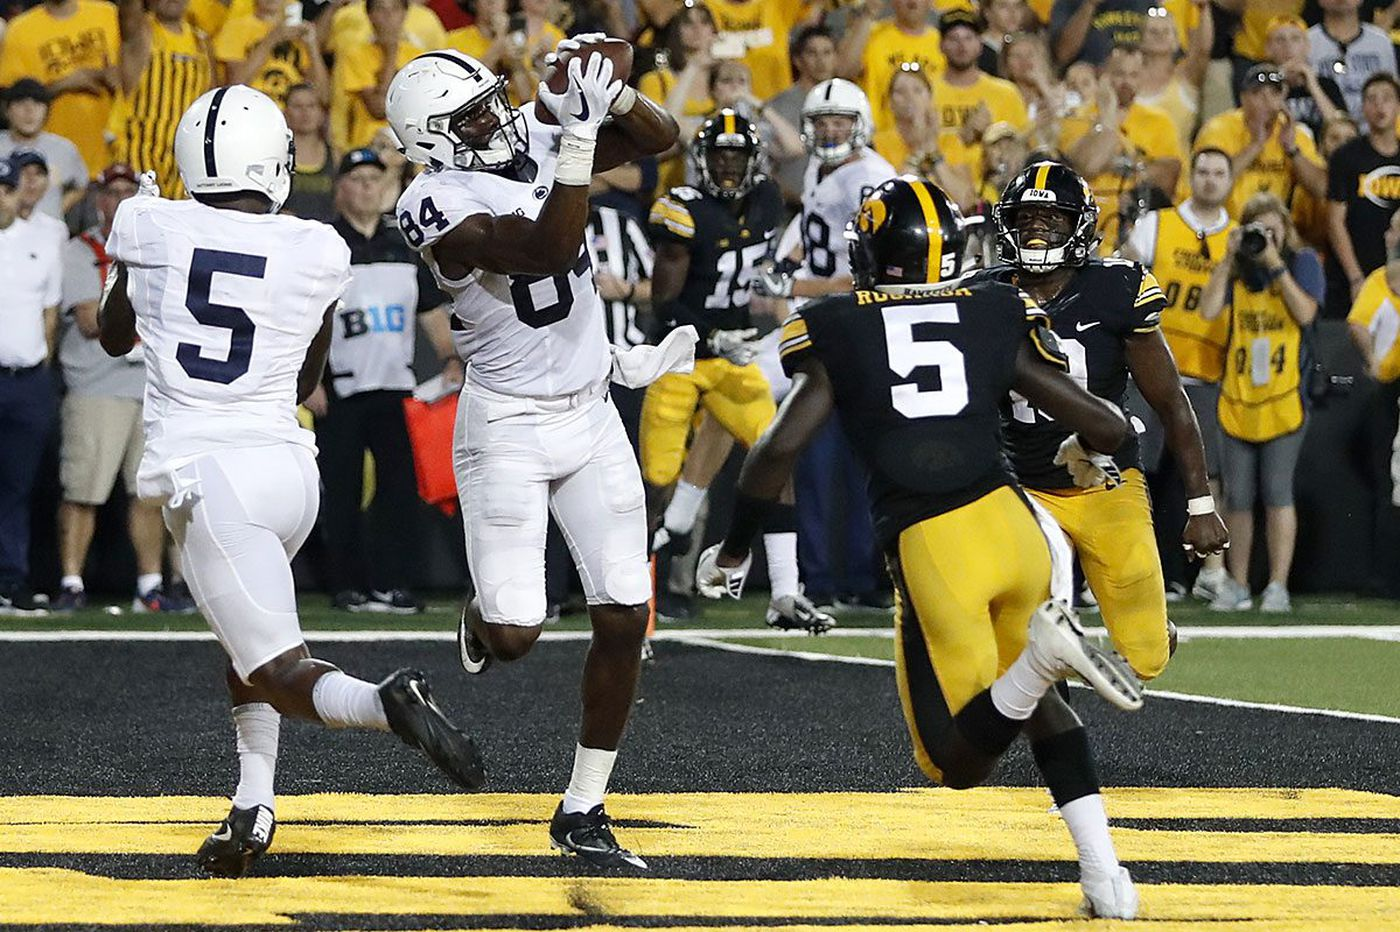 Penn State wide receiver Juwan Johnson likely to transfer